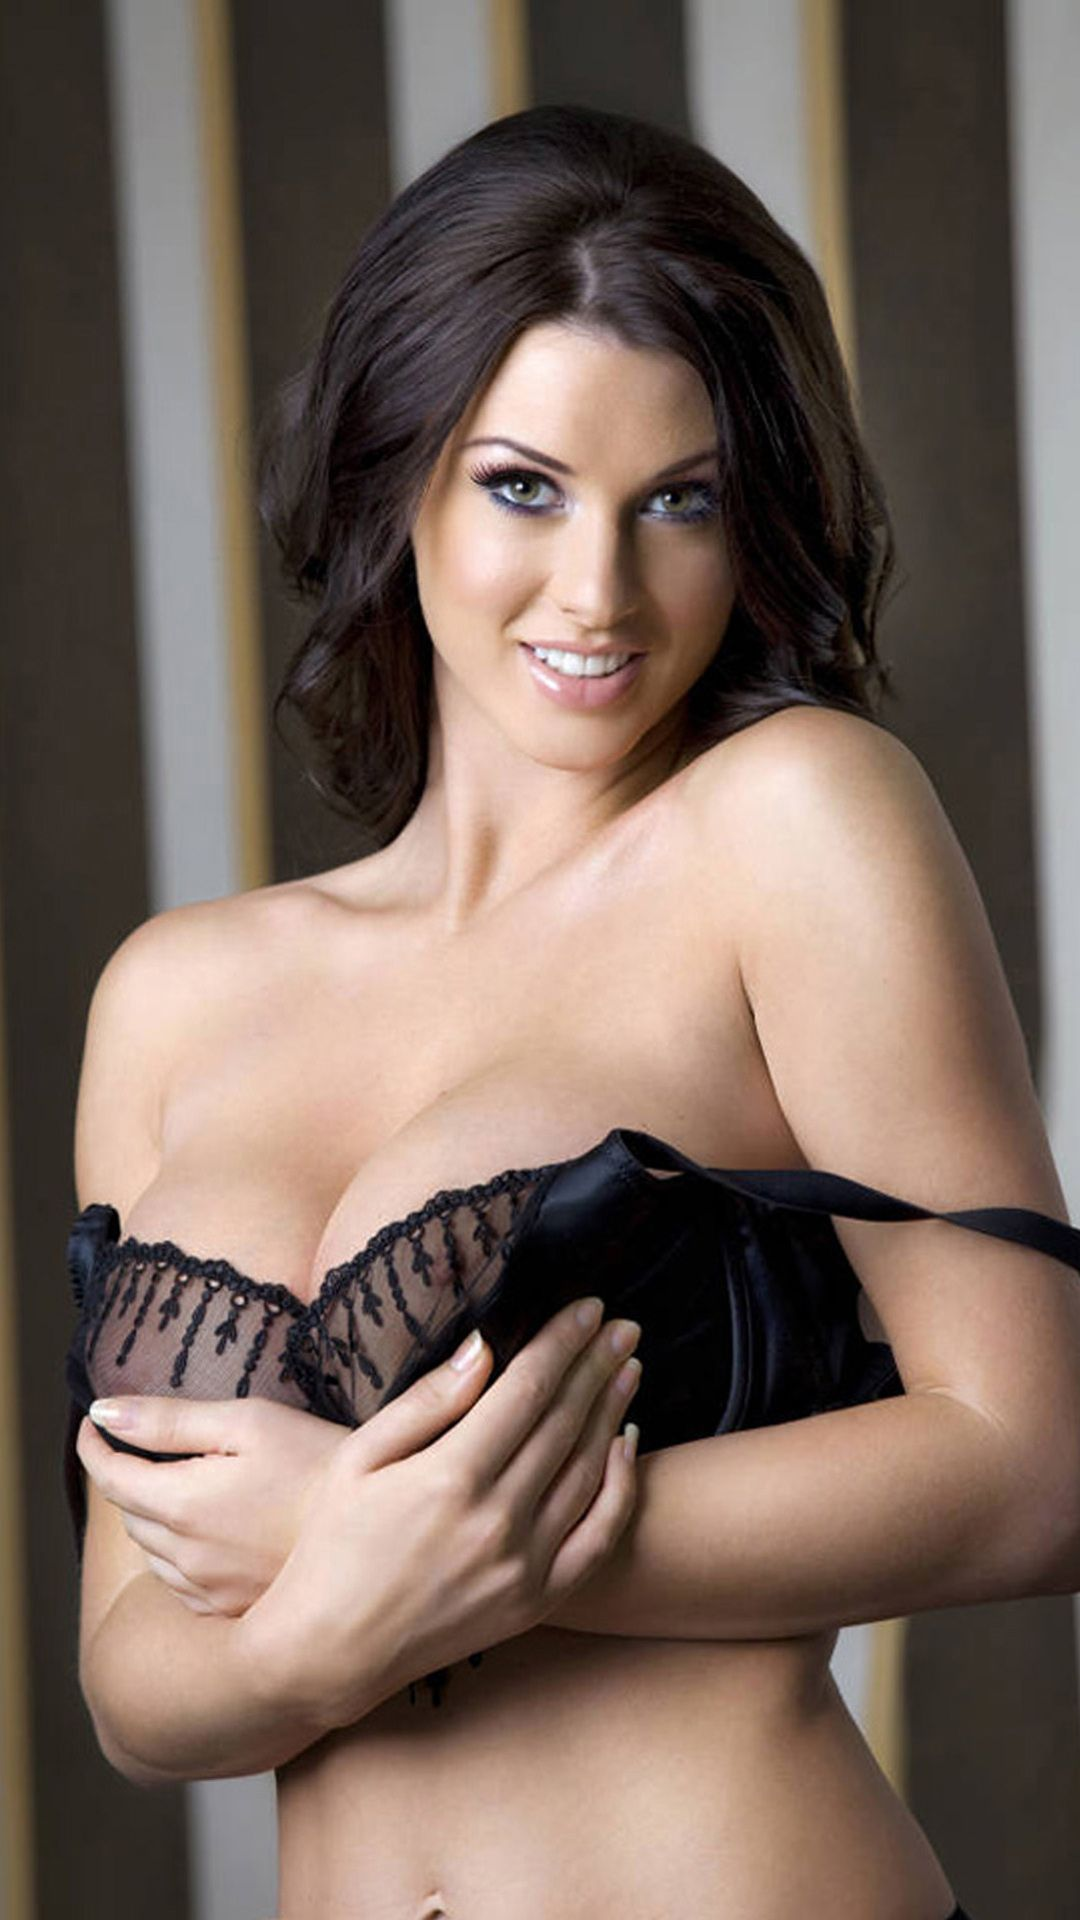 alice-goodwin-3 htc one m8 wallpaper | alice goodwin | pinterest